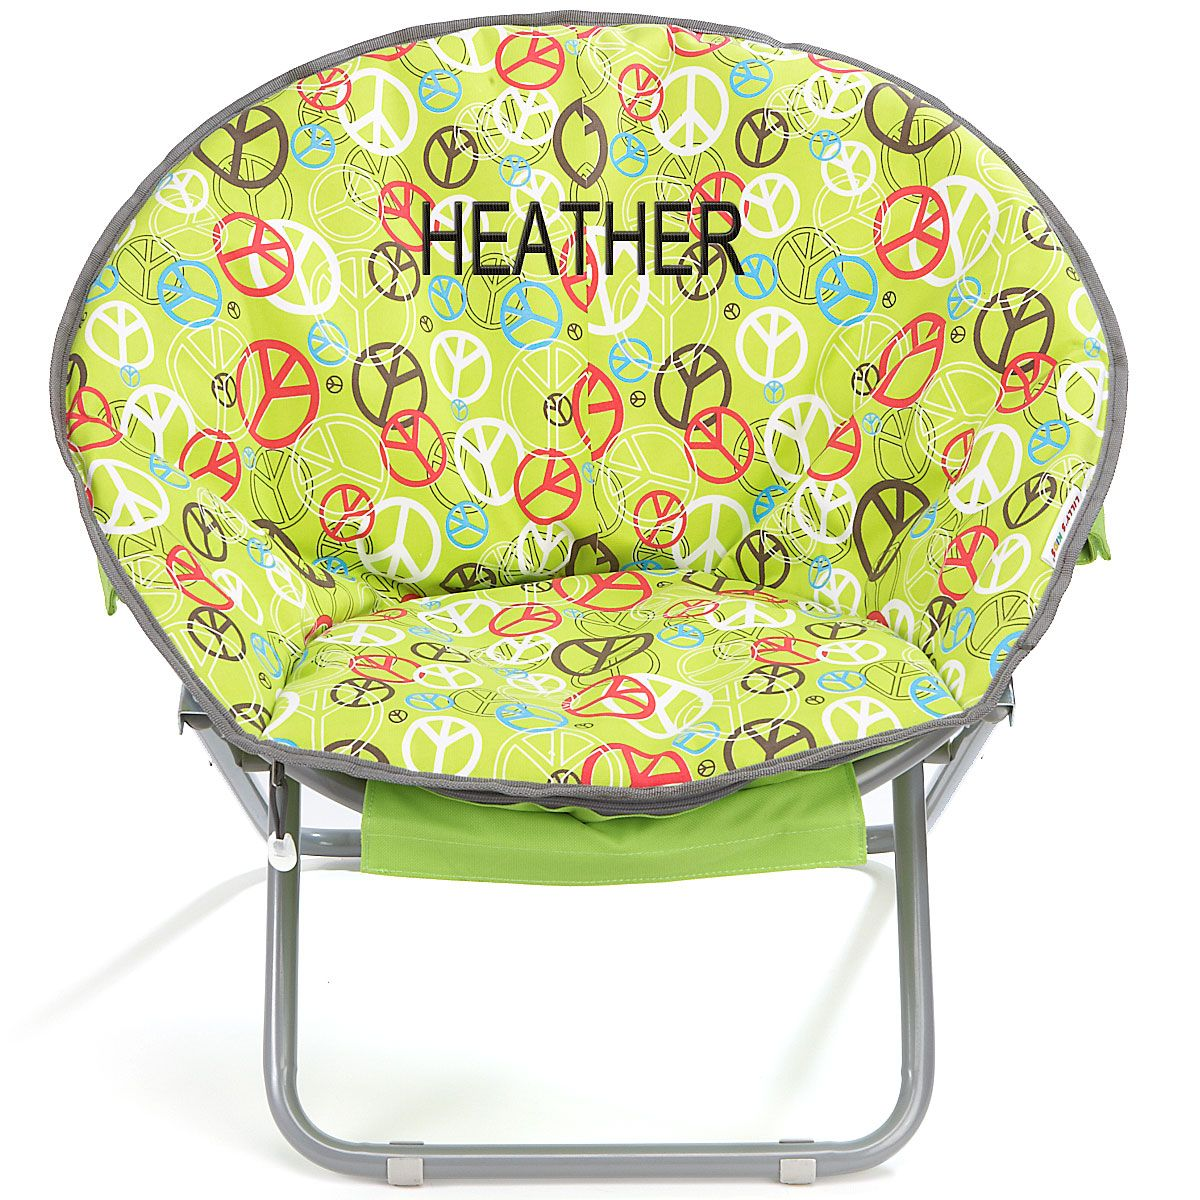 Just because my name is on it already!!-Peace Sign Saucer Chair in Back to School from Lillian Vernon